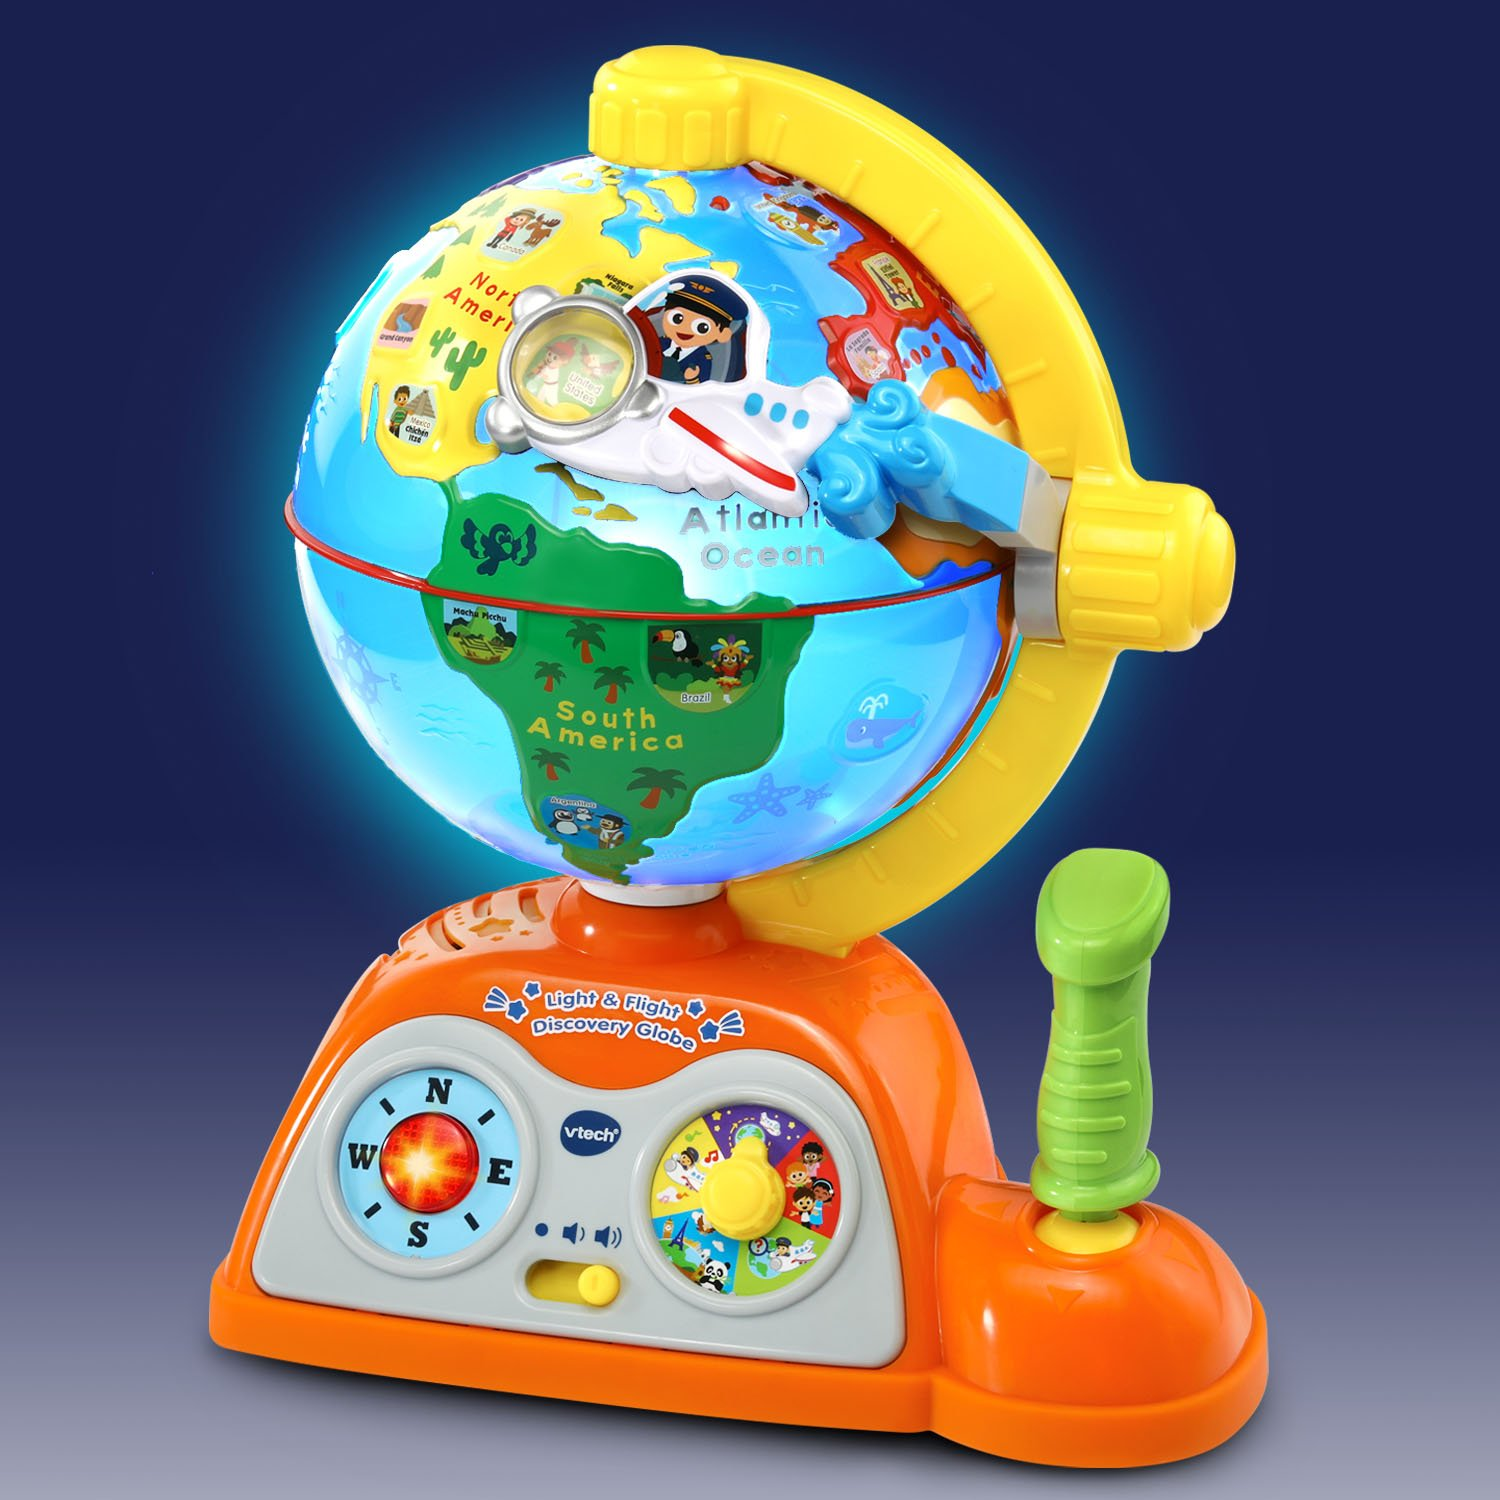 VTech Light and Flight Discovery Globe Amazon Exclusive by VTech (Image #2)